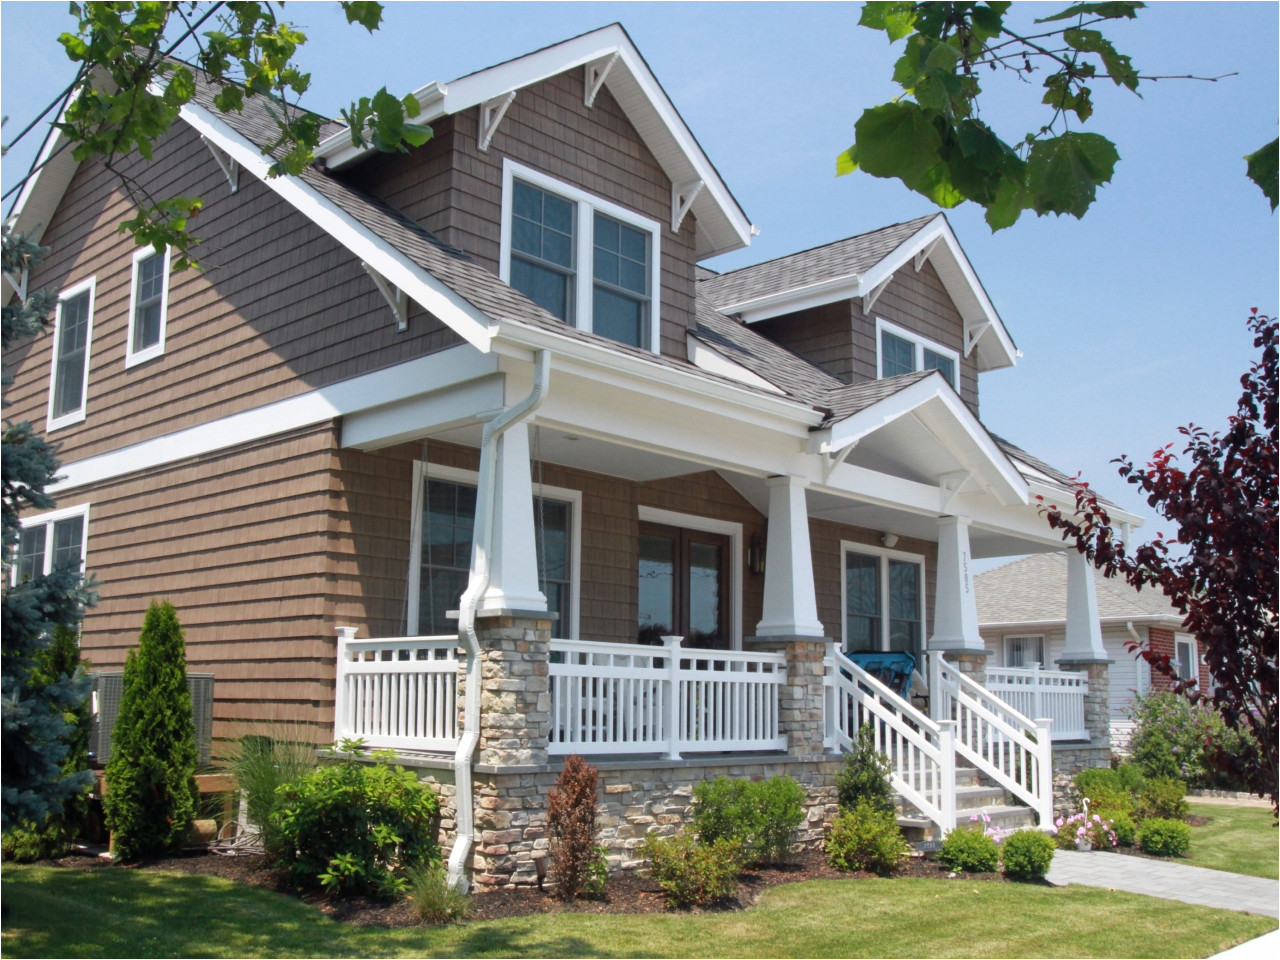 4 bedroom house plans with front porch